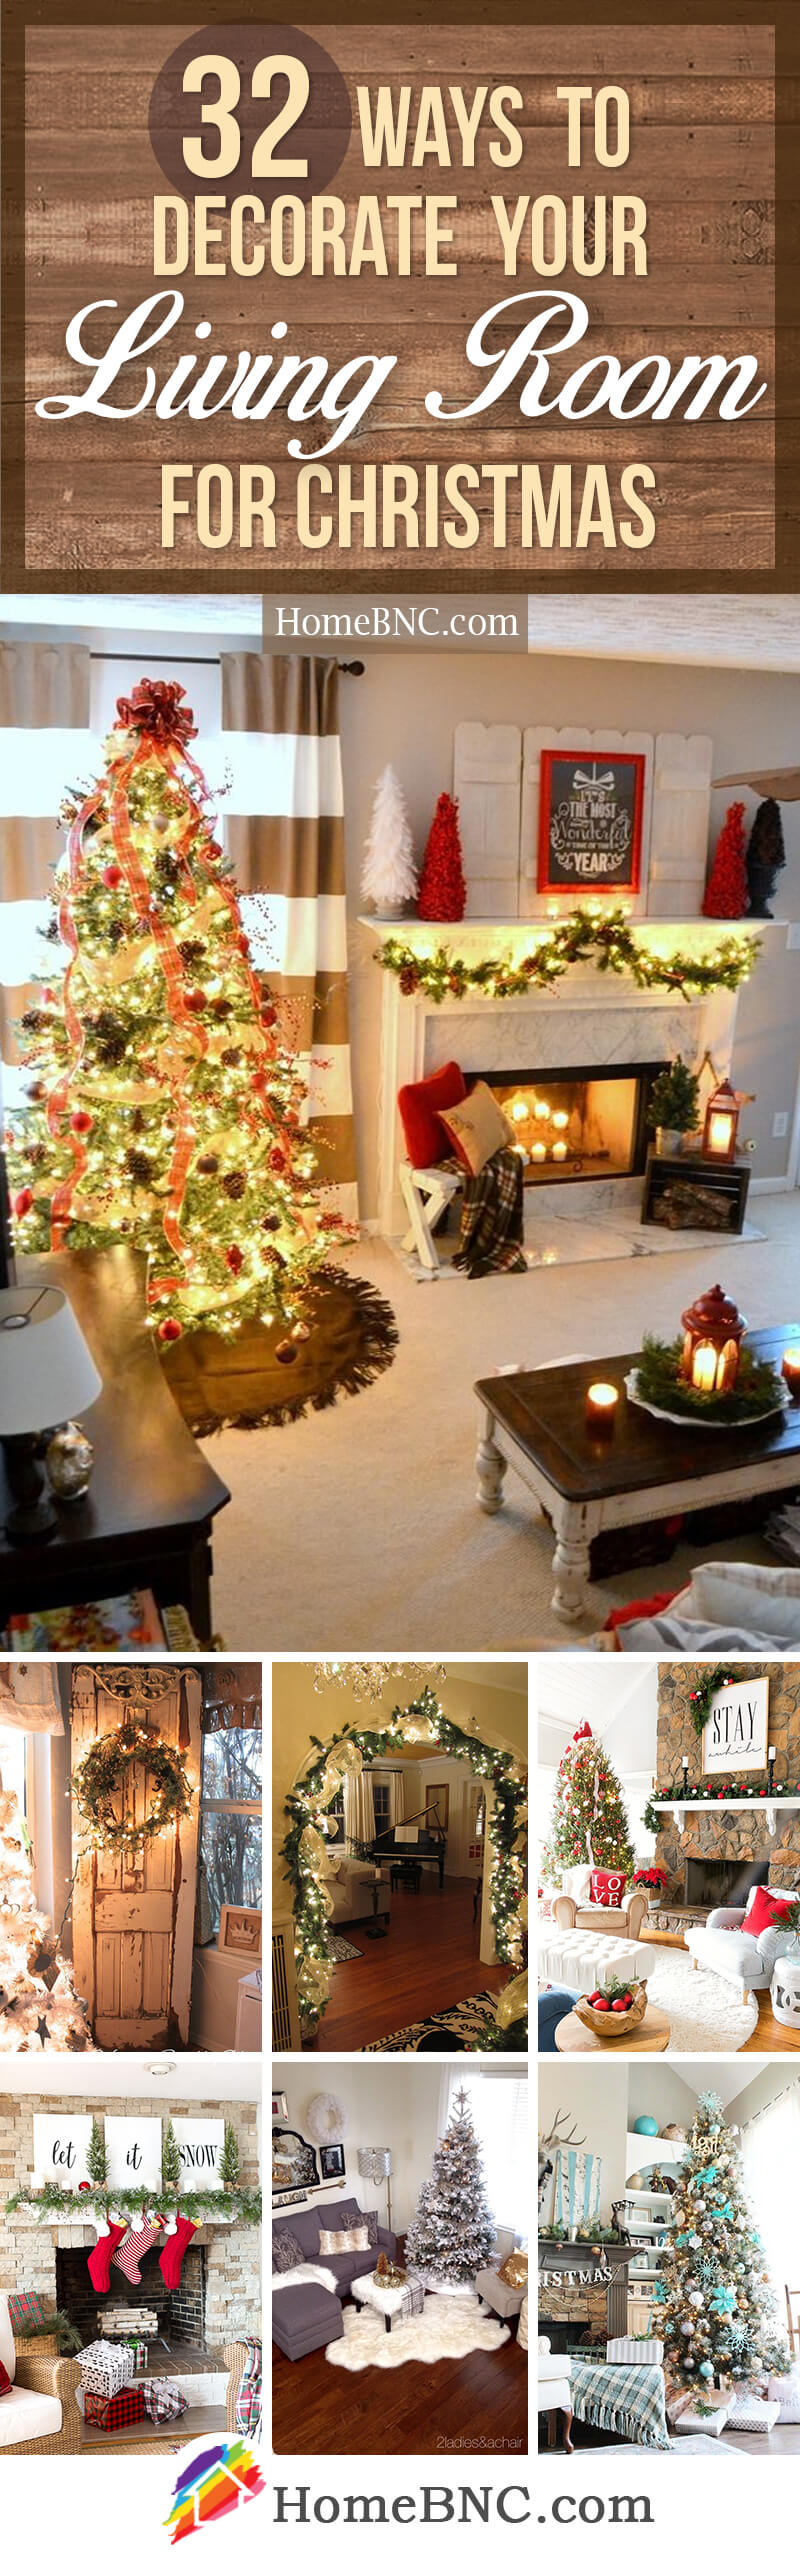 32 festive christmas living room decor ideas to celebrate the holidays with style - Christmas Decorations For Your Room